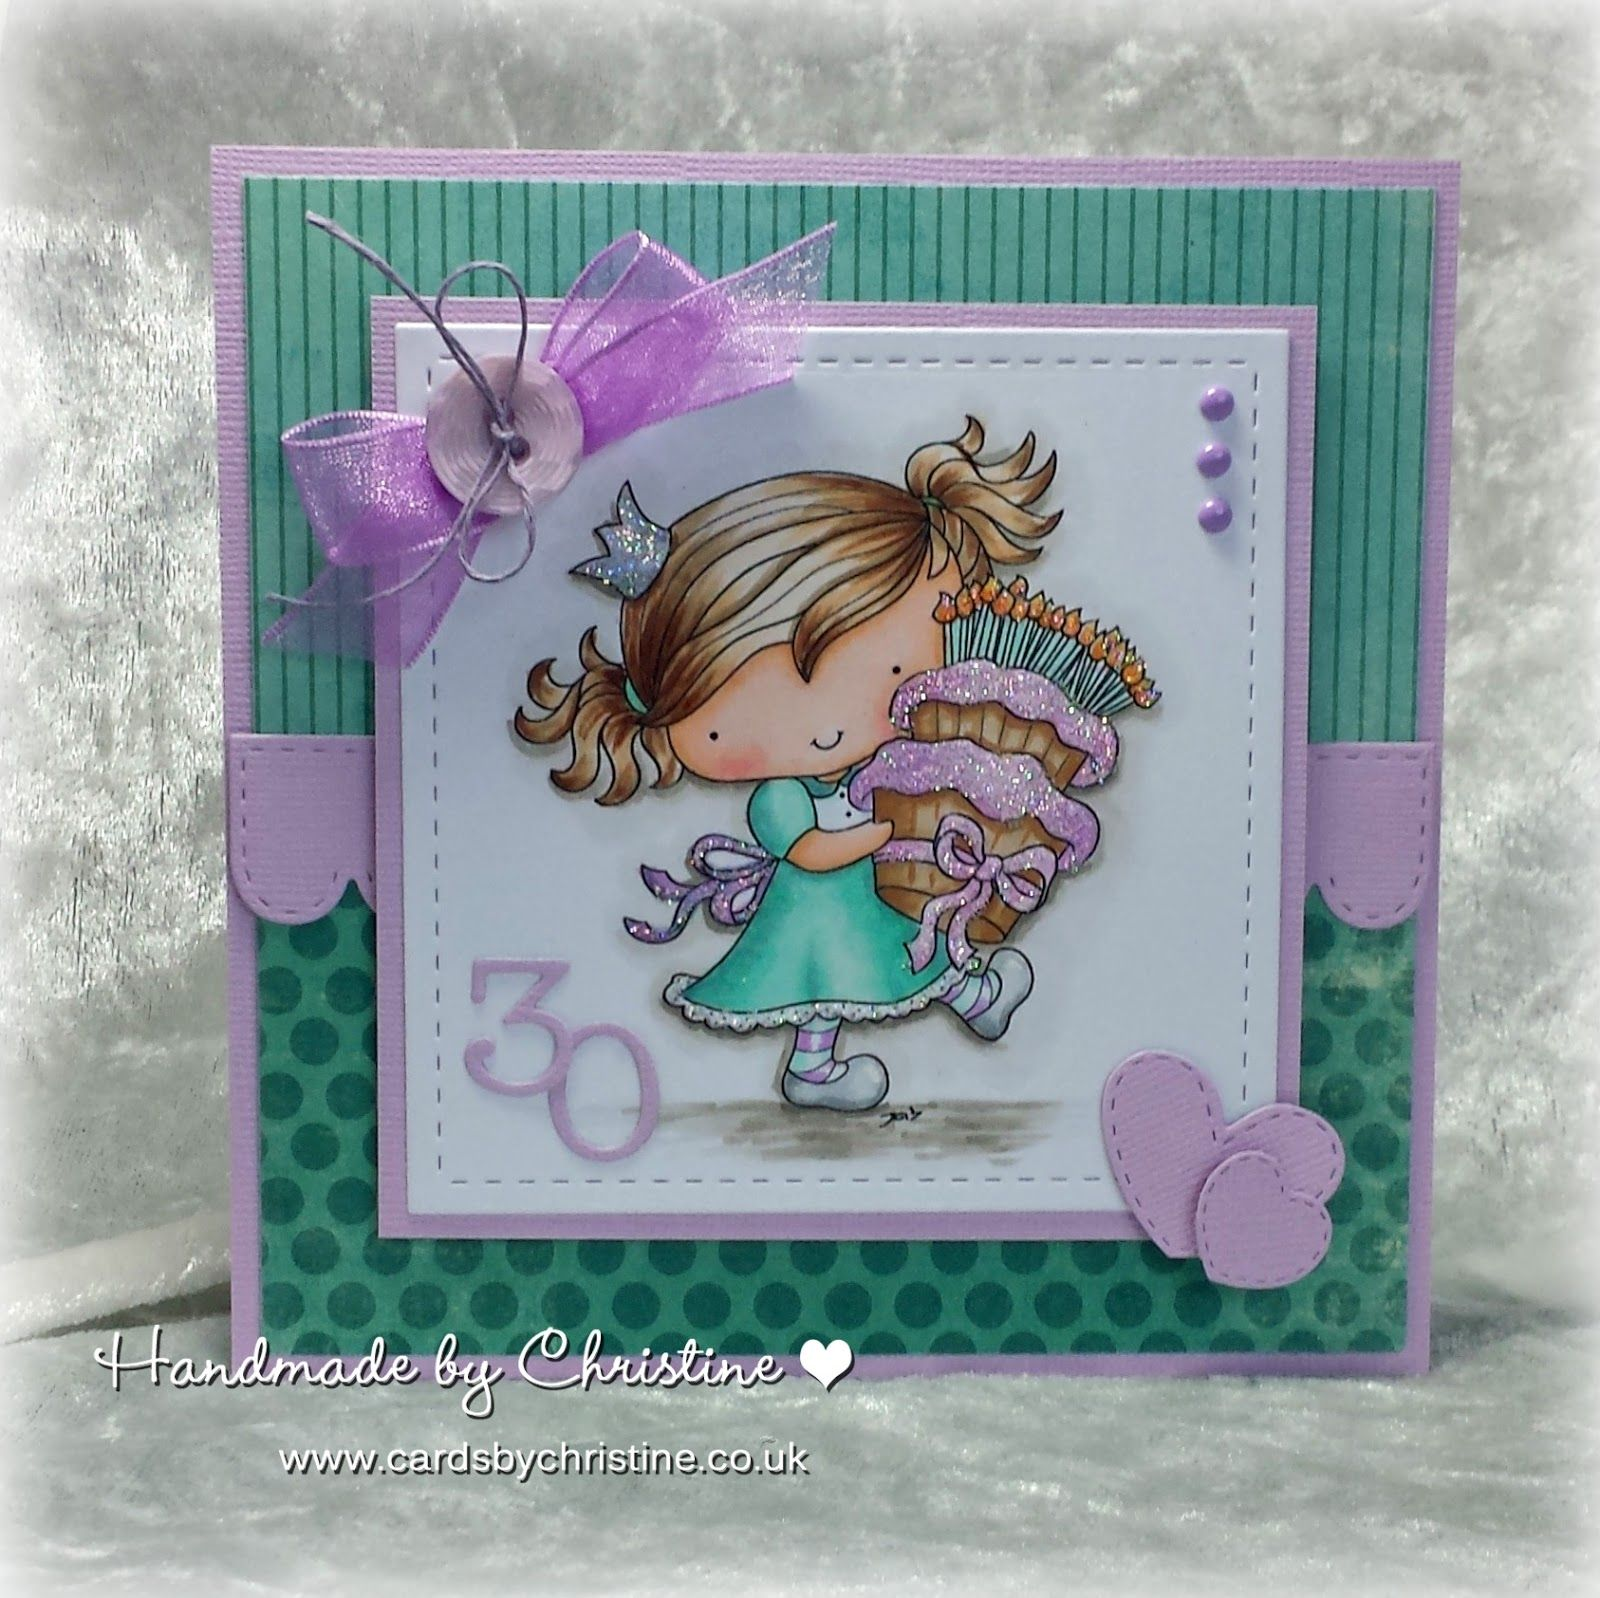 Handmade by christine cards by amazing crafters pinterest